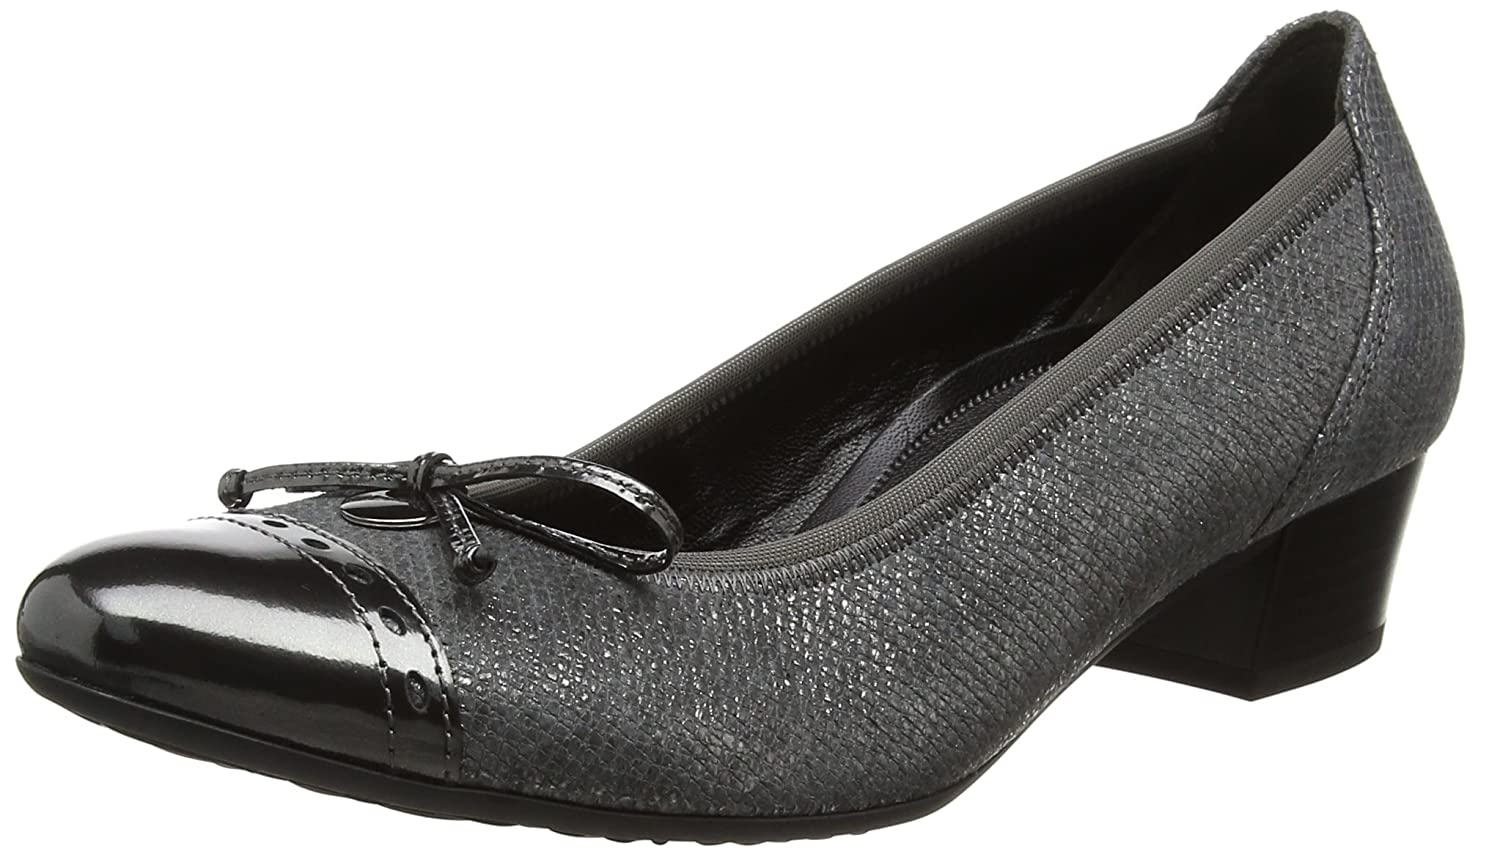 Dunkelgrau (Steel) Gabor Damen Comfort Fashion Pumps